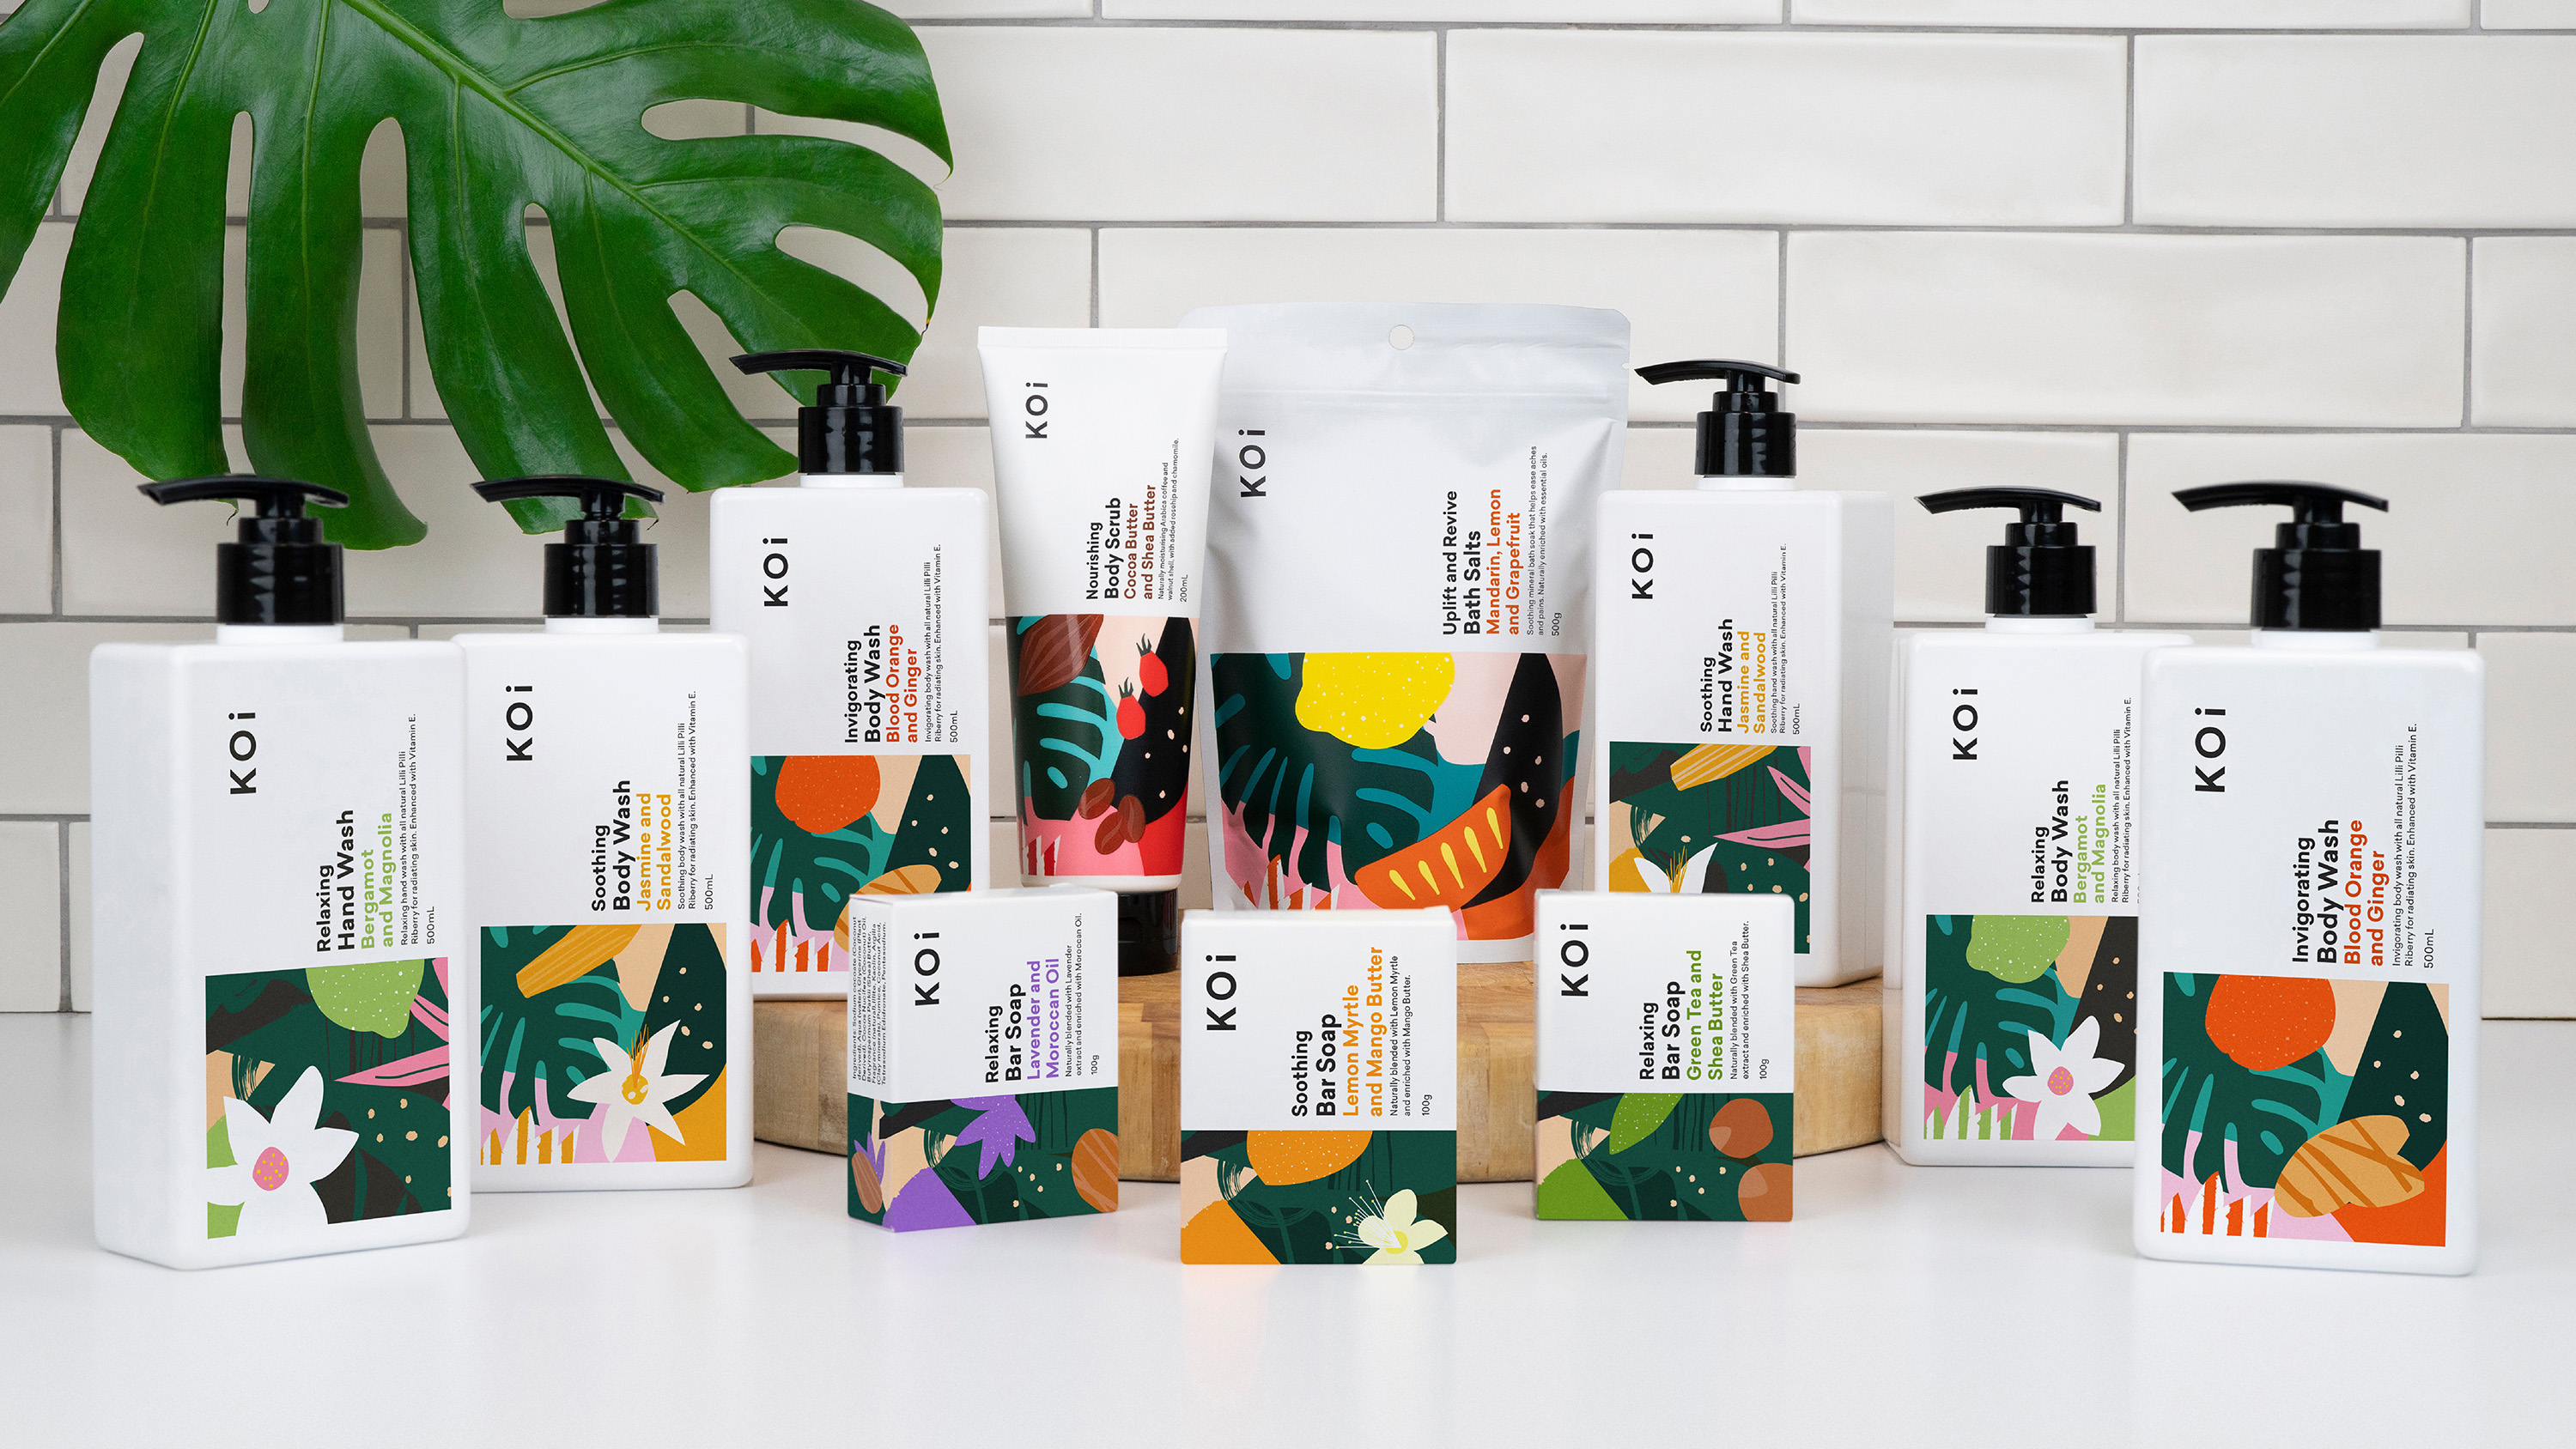 Hulsbosch Creates Coles Premium Skin Care Brand and Packaging